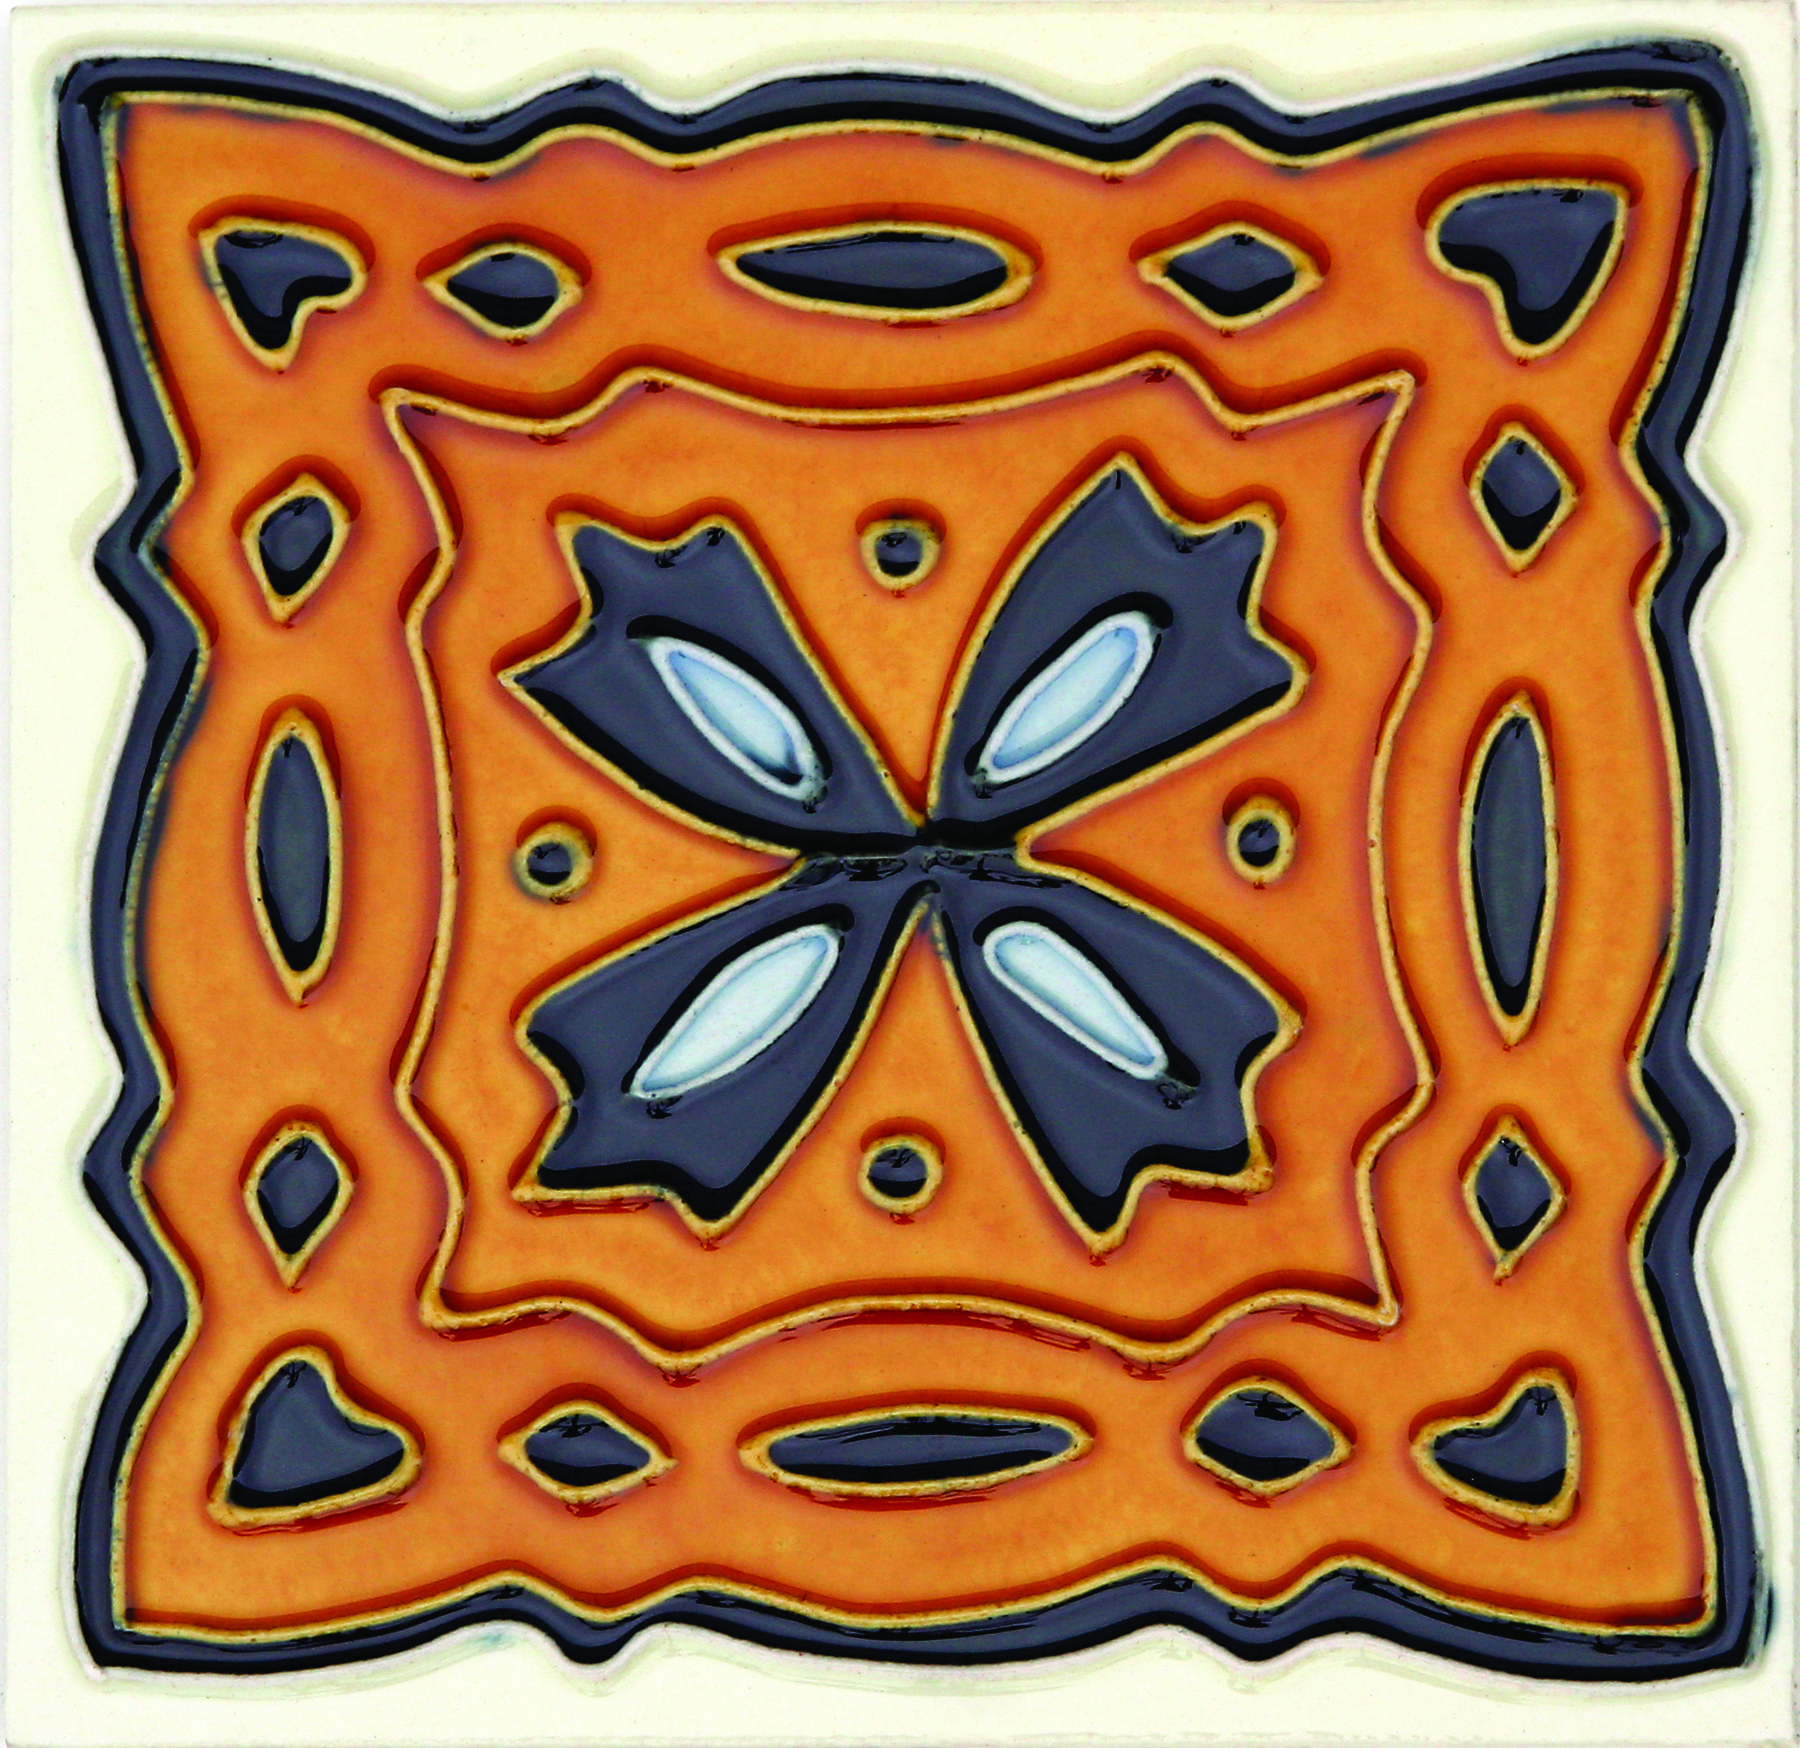 Hand-Painted Ceramic Glazed Wall Tile in Celtic Hand-Painted Ceramic Glazed Wall Tile in Celtic 0